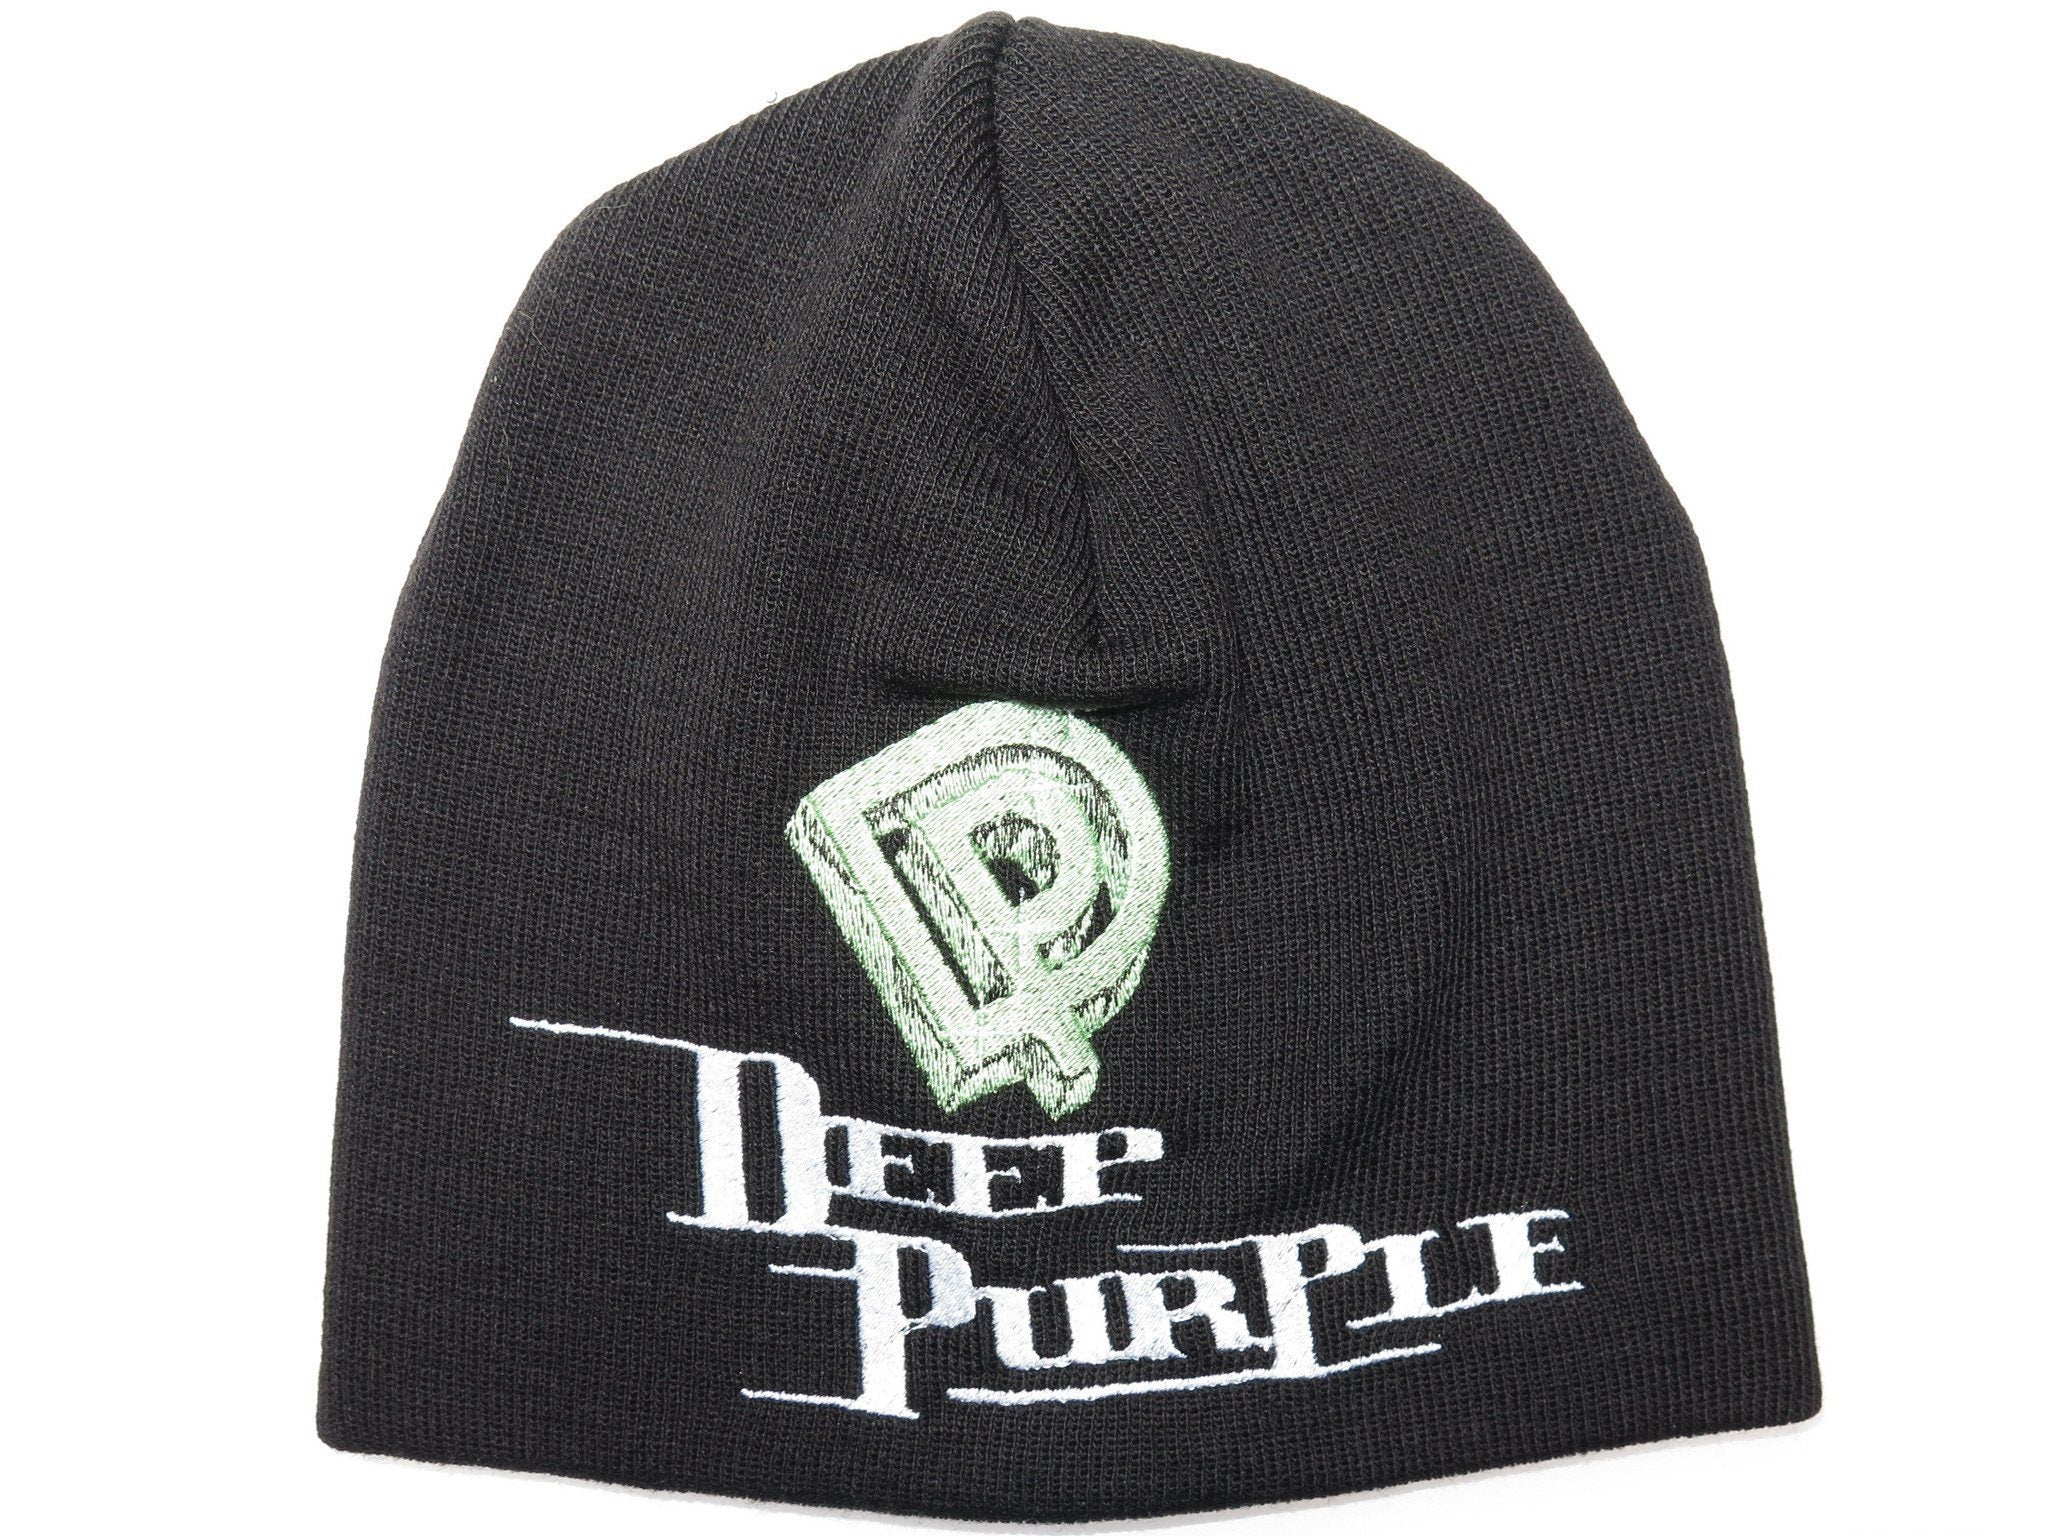 DEEP PURPLE DP Logo Acrylic Wool Beanie Hat BNWT - A Patch E Store